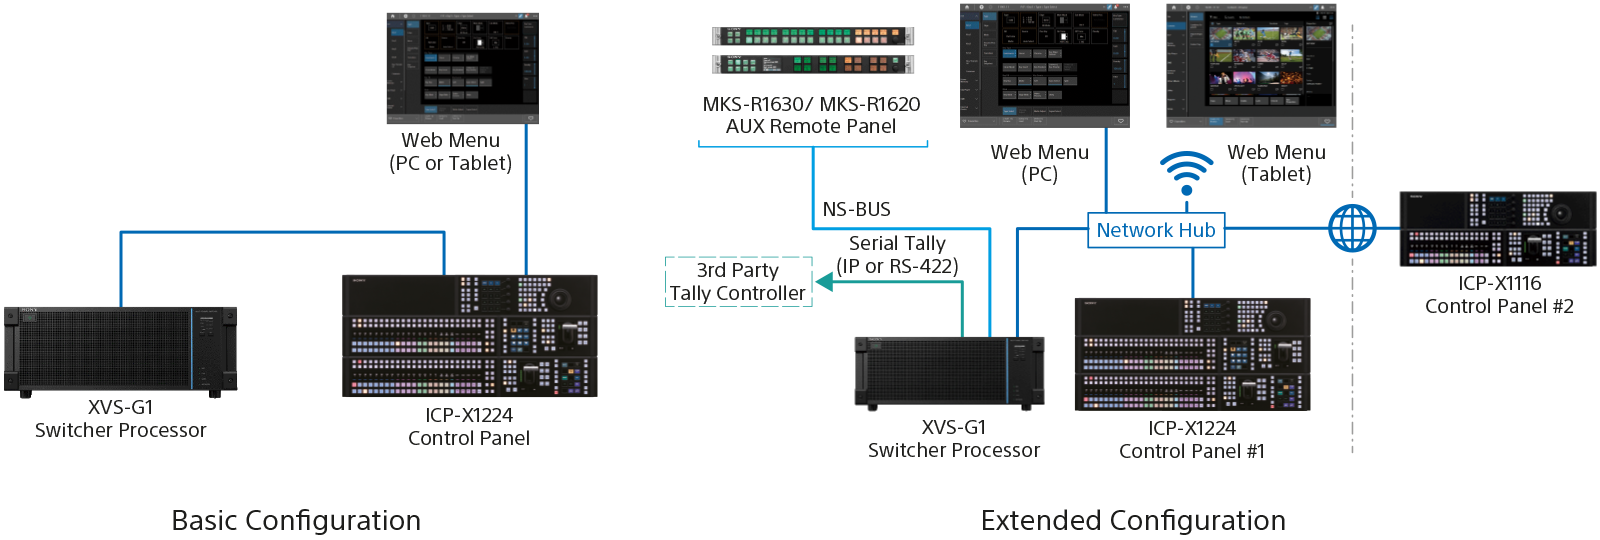 Diagram depicting the workflow and configuration of the XVS-G1